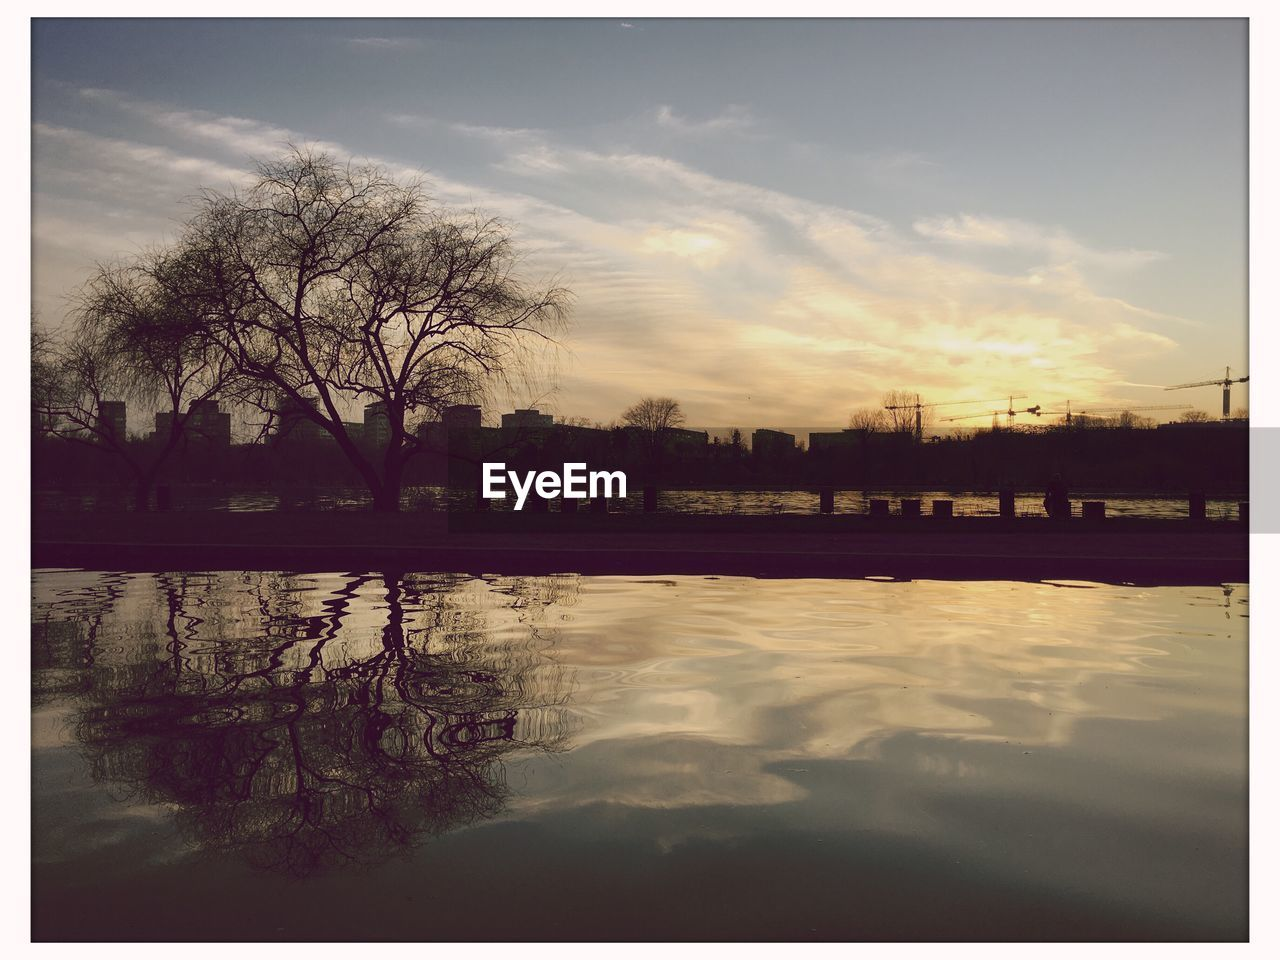 reflection, sky, water, tree, cloud - sky, building exterior, outdoors, architecture, built structure, river, bare tree, nature, no people, city, beauty in nature, tranquility, travel destinations, sunset, scenics, day